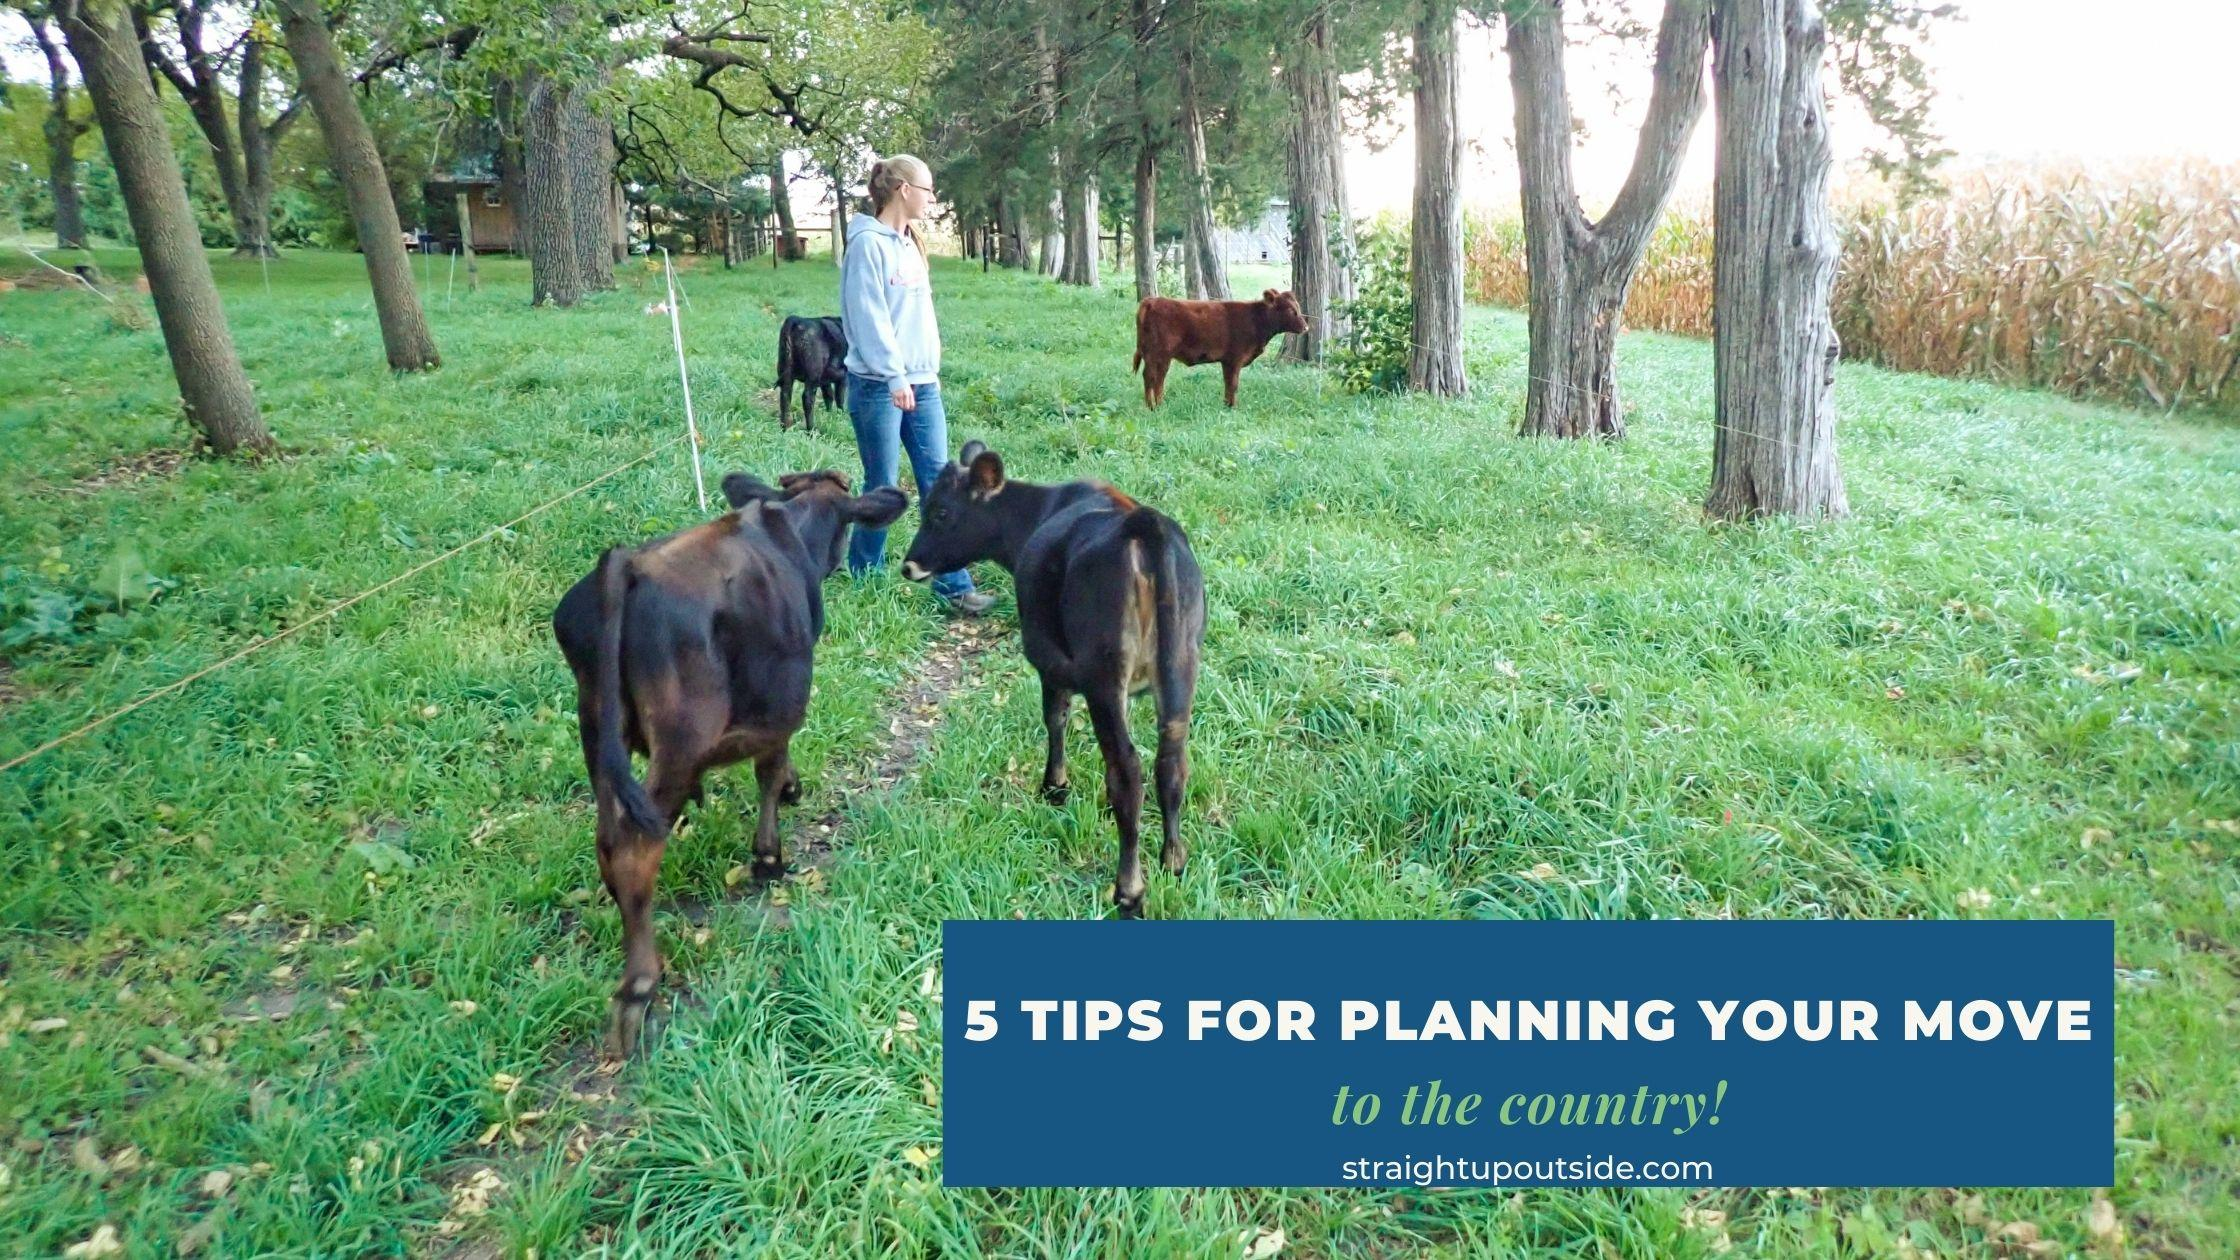 5 Tips For Planning Your Move To The Country